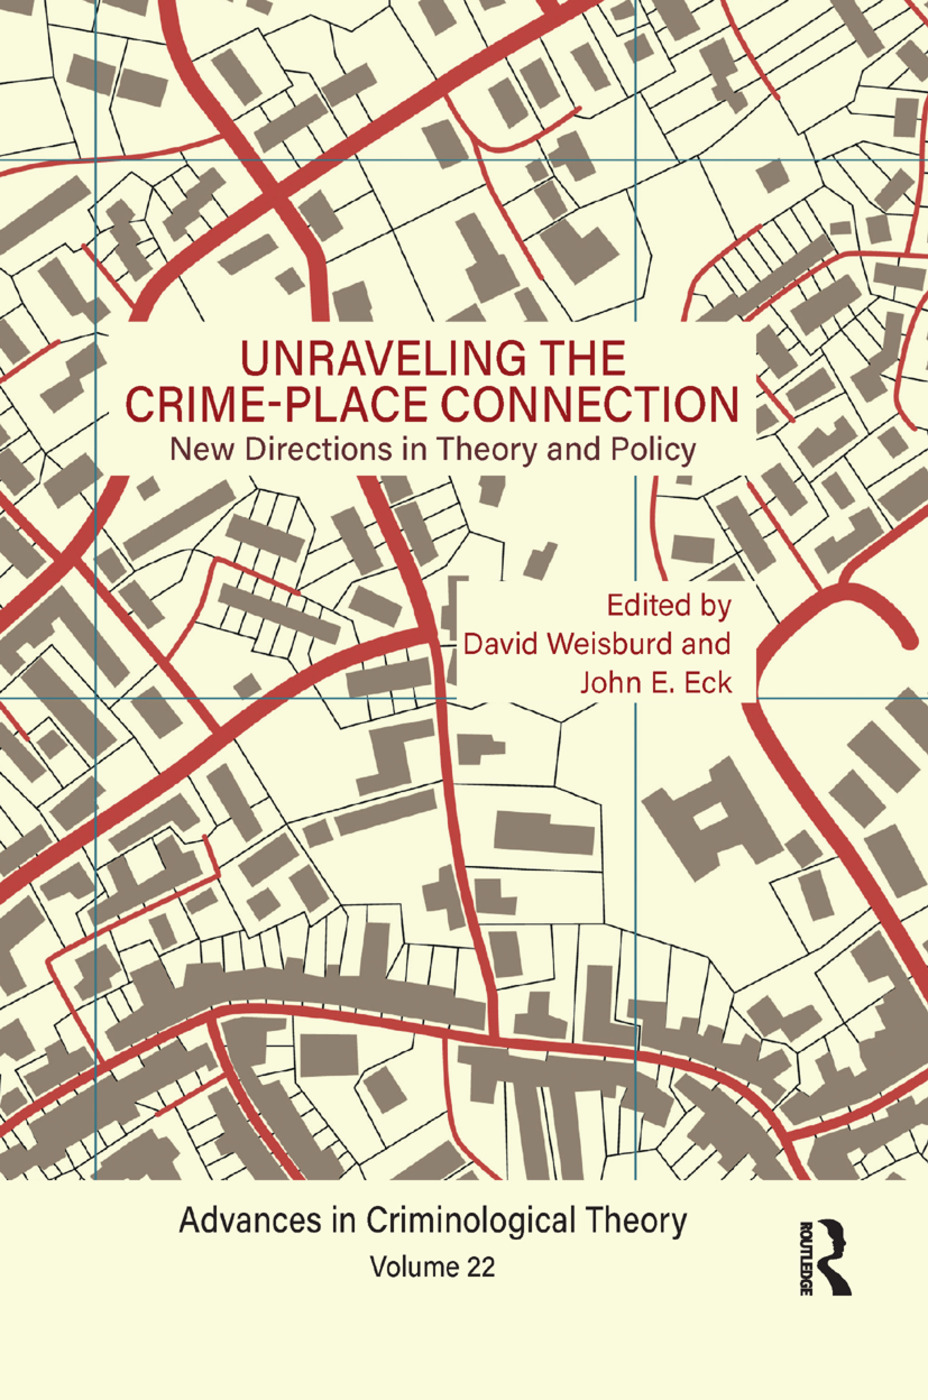 Unraveling the Crime-Place Connection, Volume 22: New Directions in Theory and Policy book cover